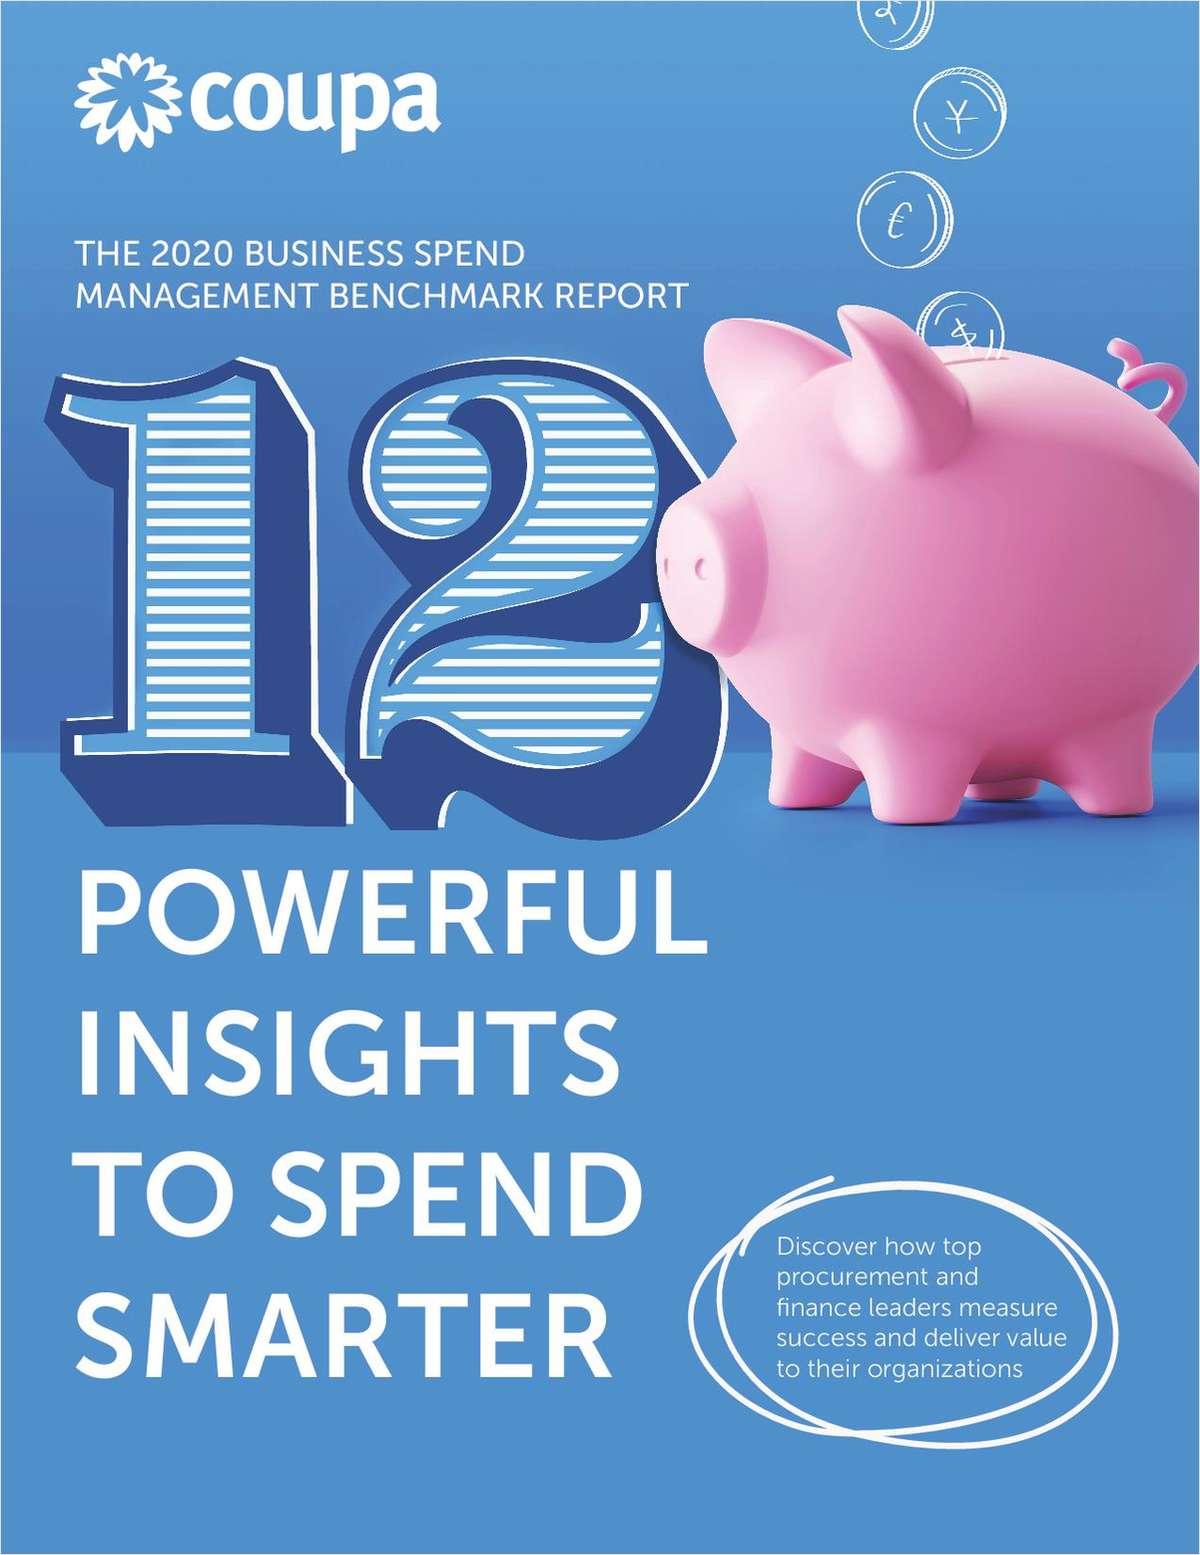 The 2020 Business Spend Management Benchmark Report